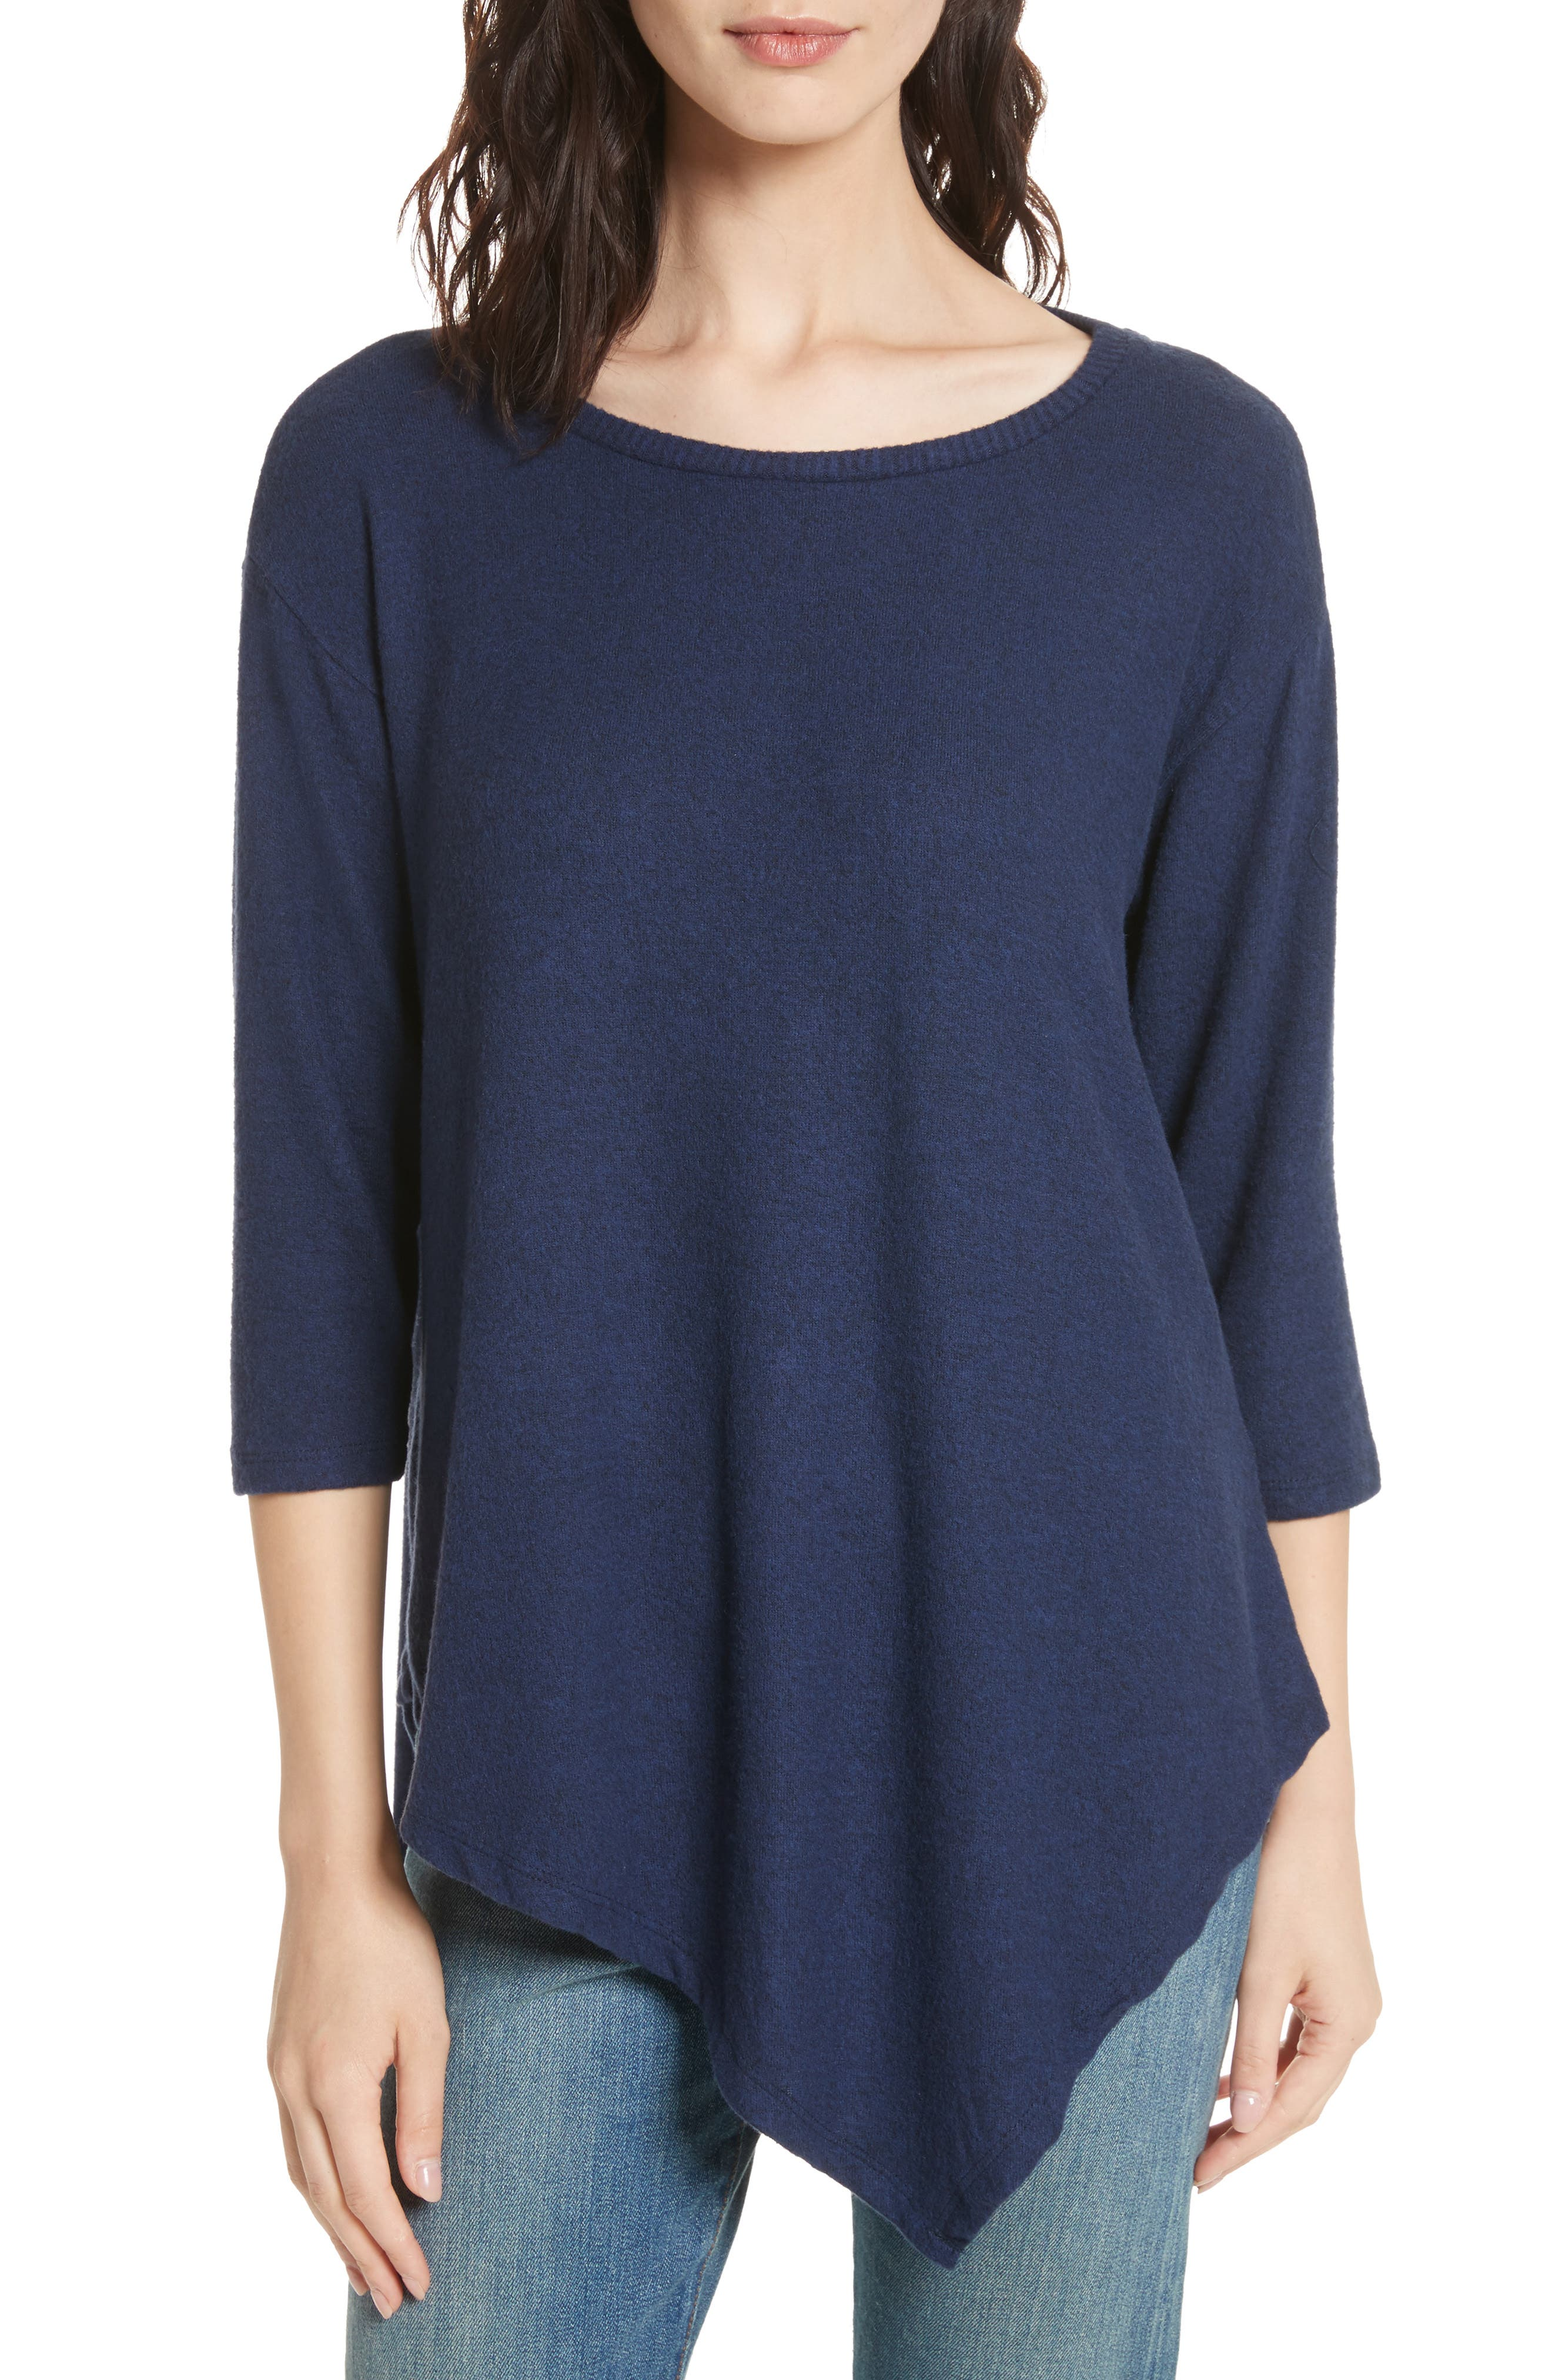 Soft Joie Tammy Asymmetrical Sweater,                         Main,                         color, 404